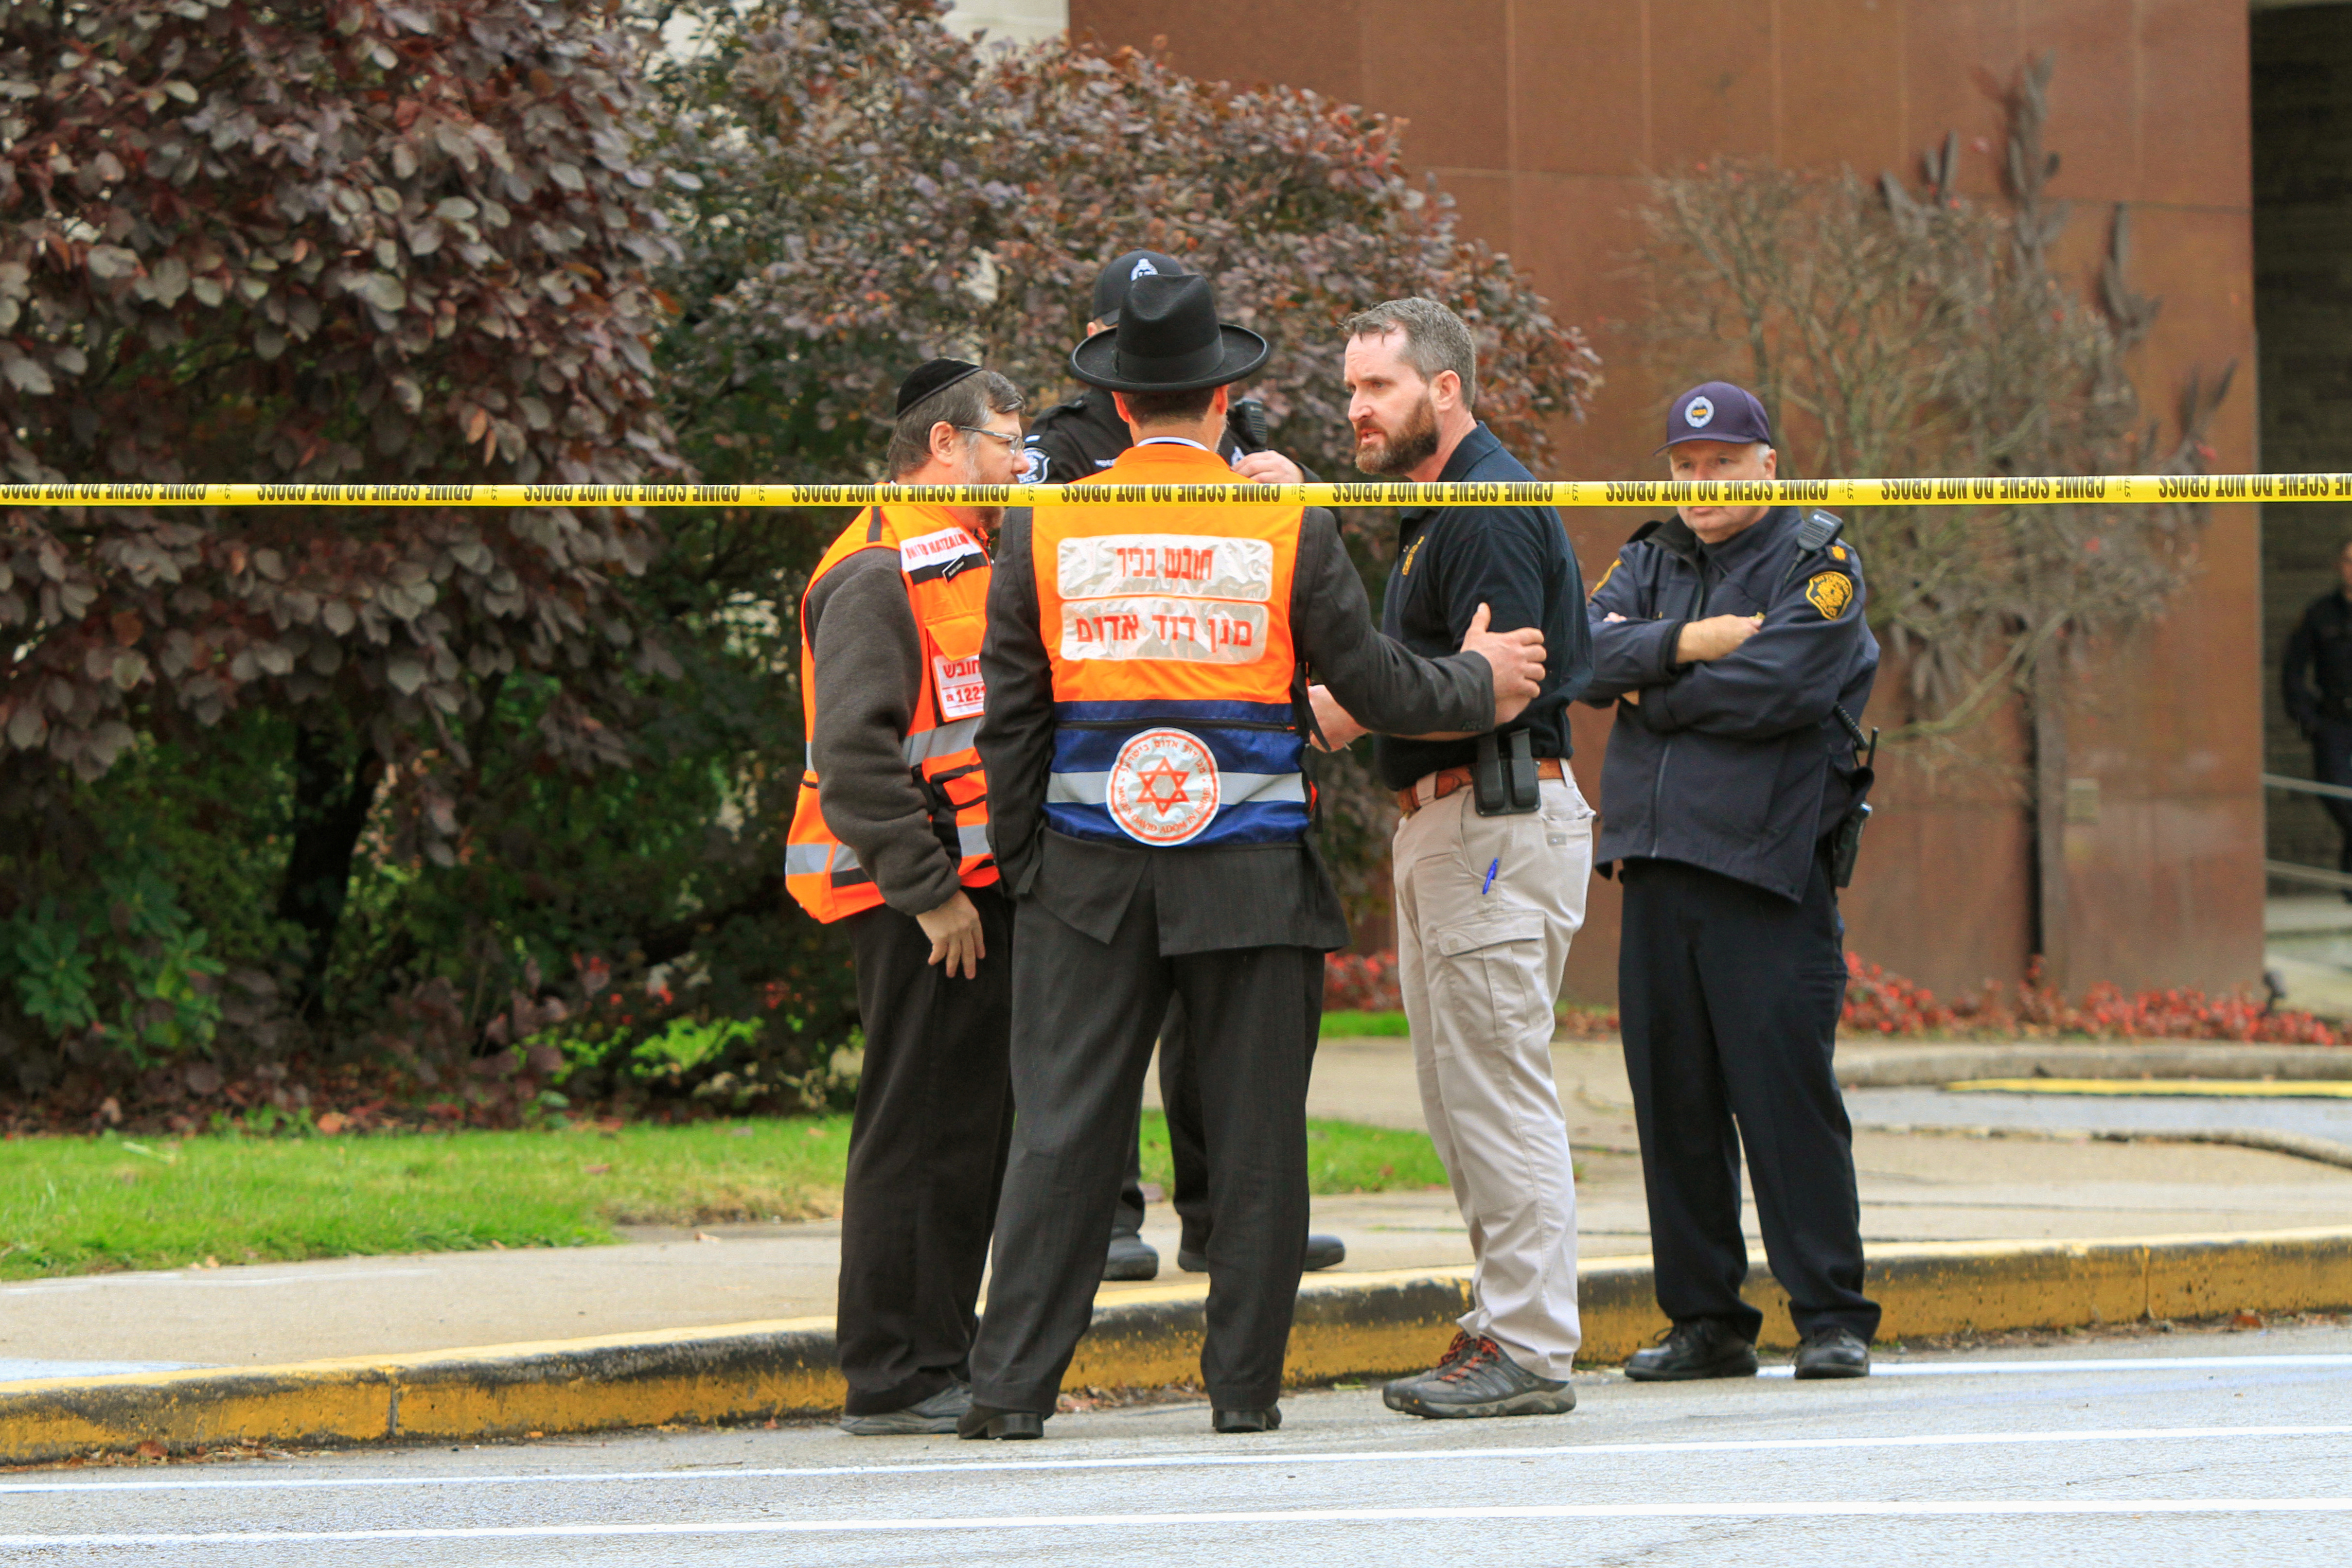 Police officers guarding the Tree of Life Synagogue following a shooting there speak with men in orange vests from a Jewish burial society in Pittsburgh, Pa., Oct. 27, 2018.